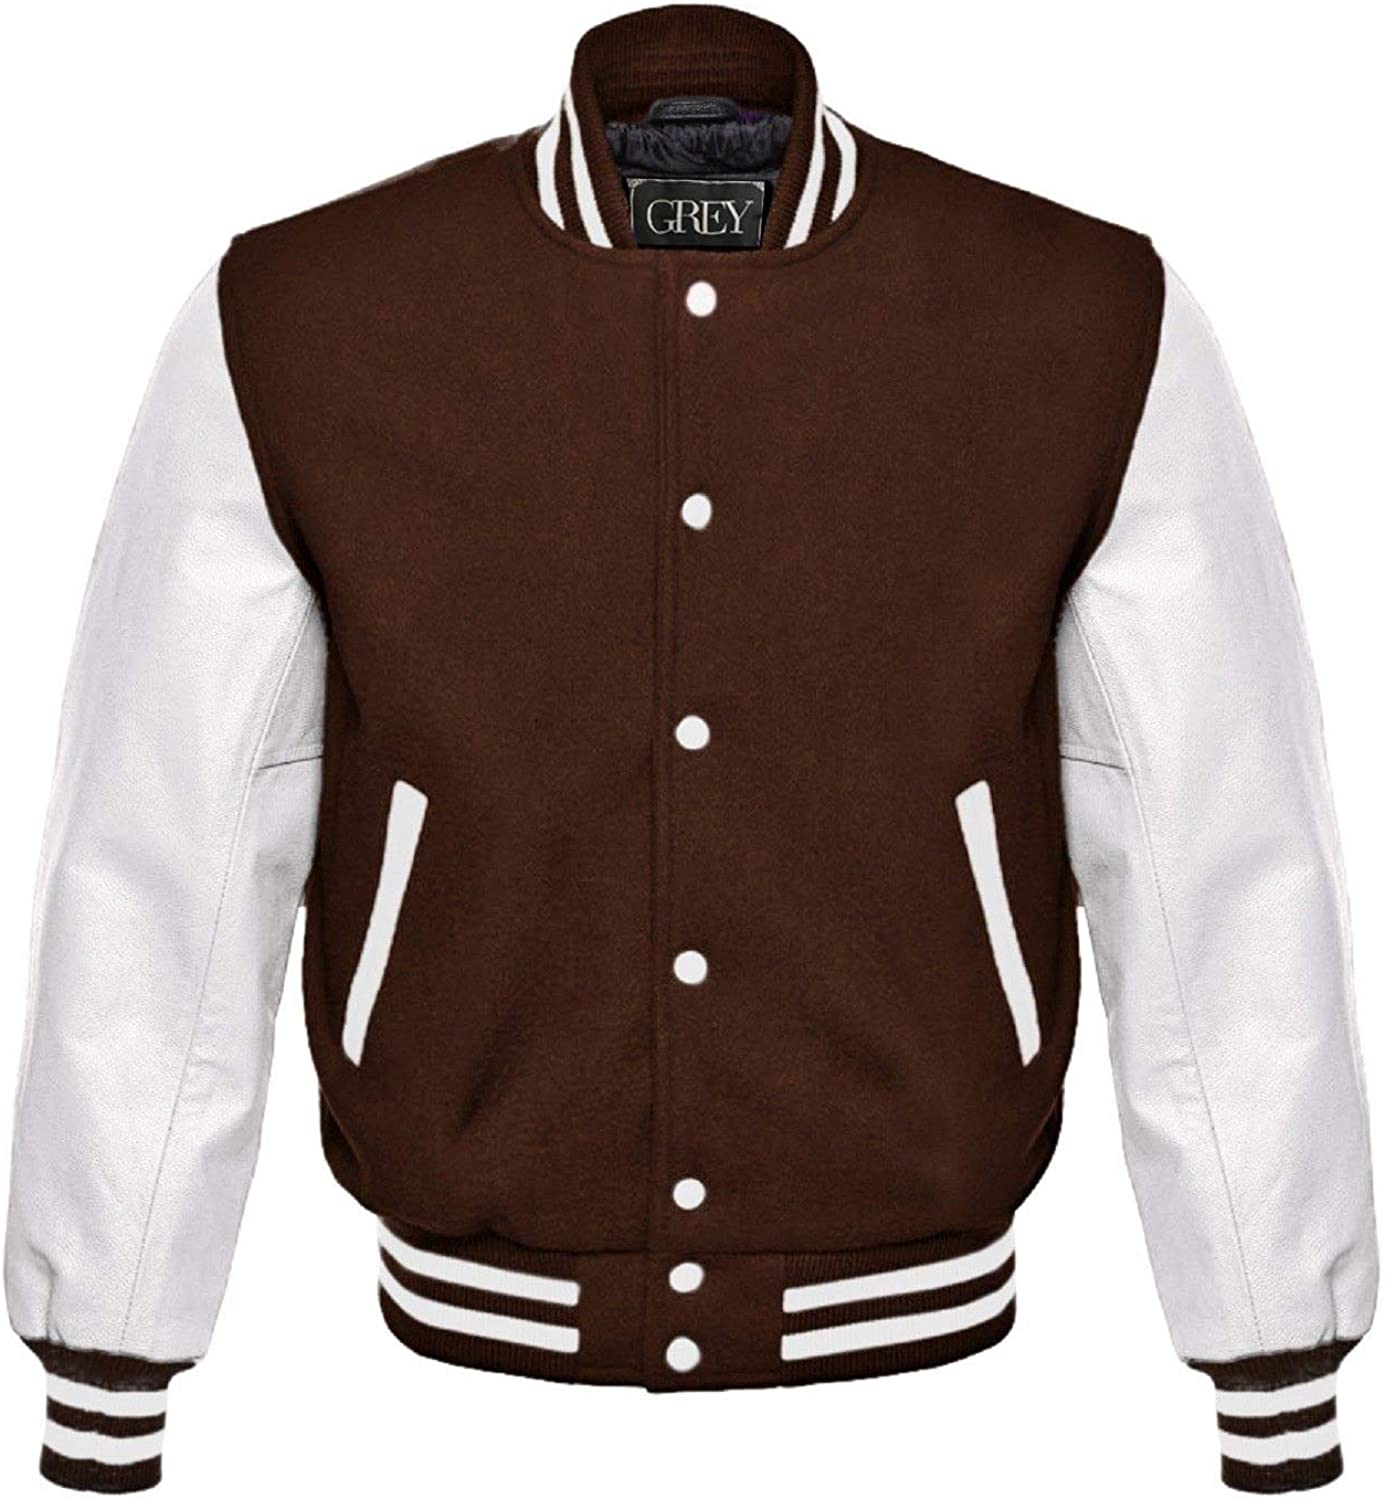 GREY Brand Varsity Jacket, Wool Body with Leather Arms Letterman Baseball Unique & Stylish (7XL) (XS, Royal Blue-White/Red Strips) (2XL, Brown-White)